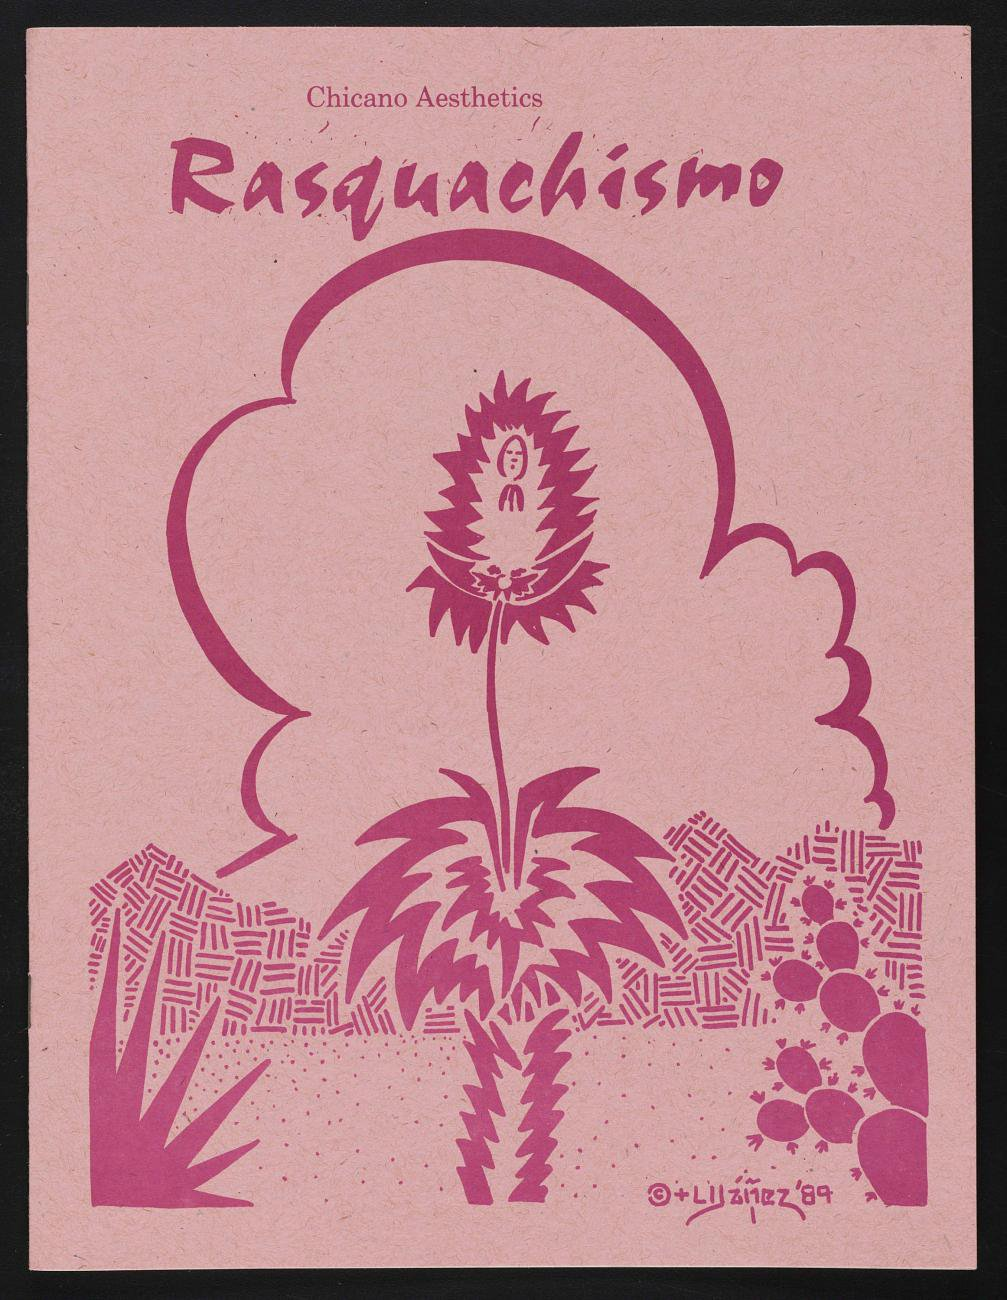 Why the Chicano Underdog Aesthetic 'Rasquachismo' Is Finally Having Its Day